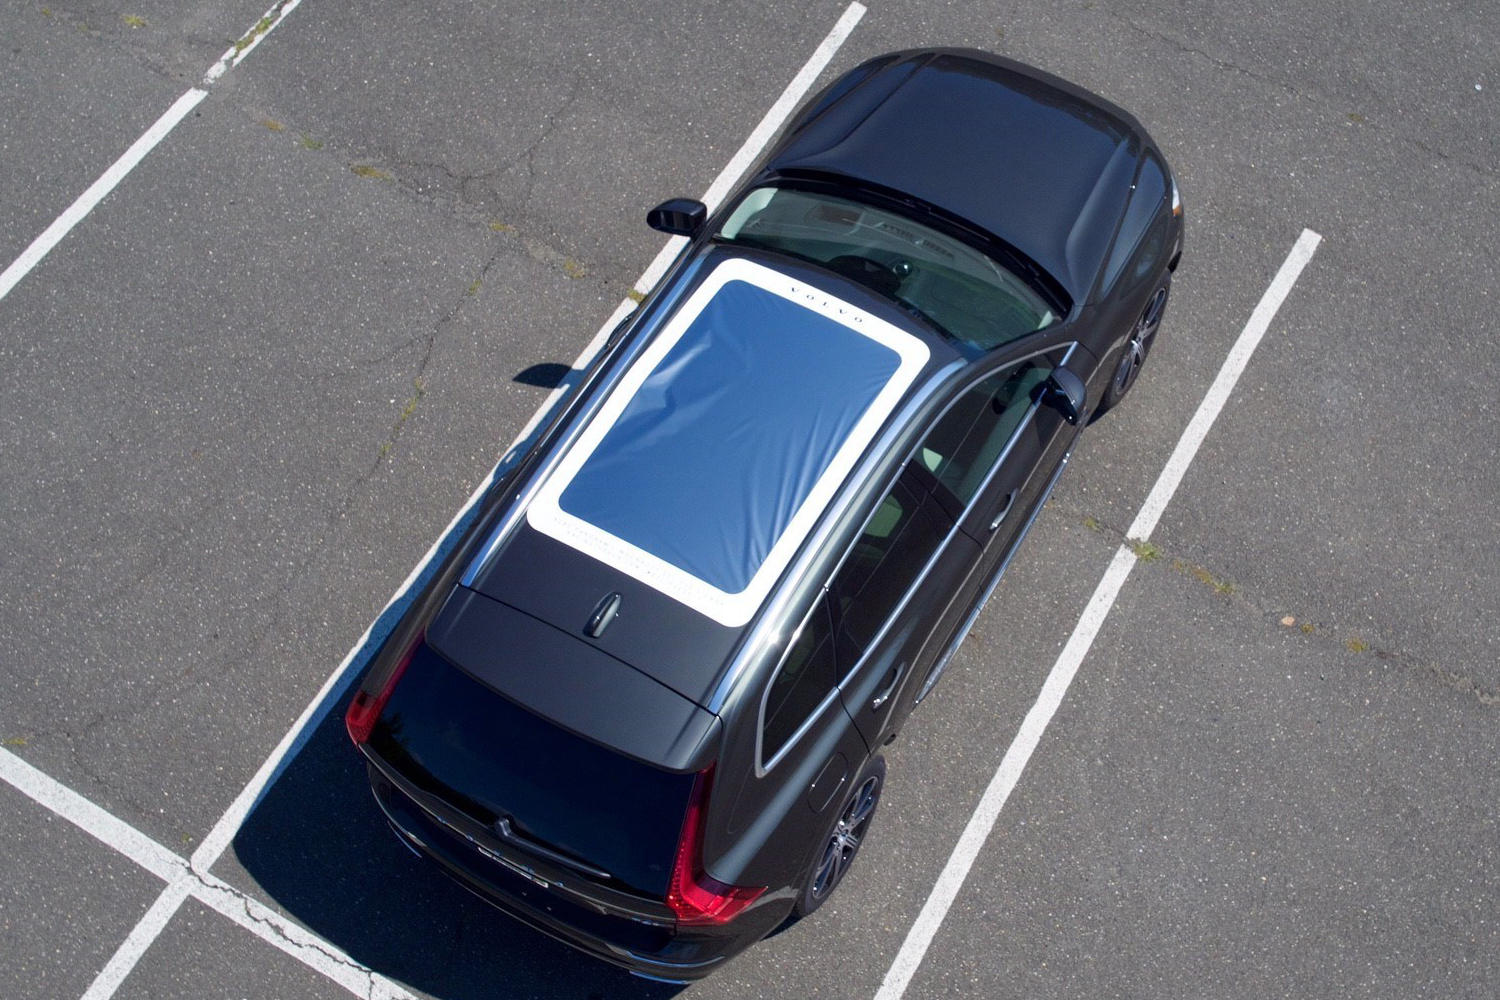 volvo-xc60-moonroof-eclipse-viewer-promo